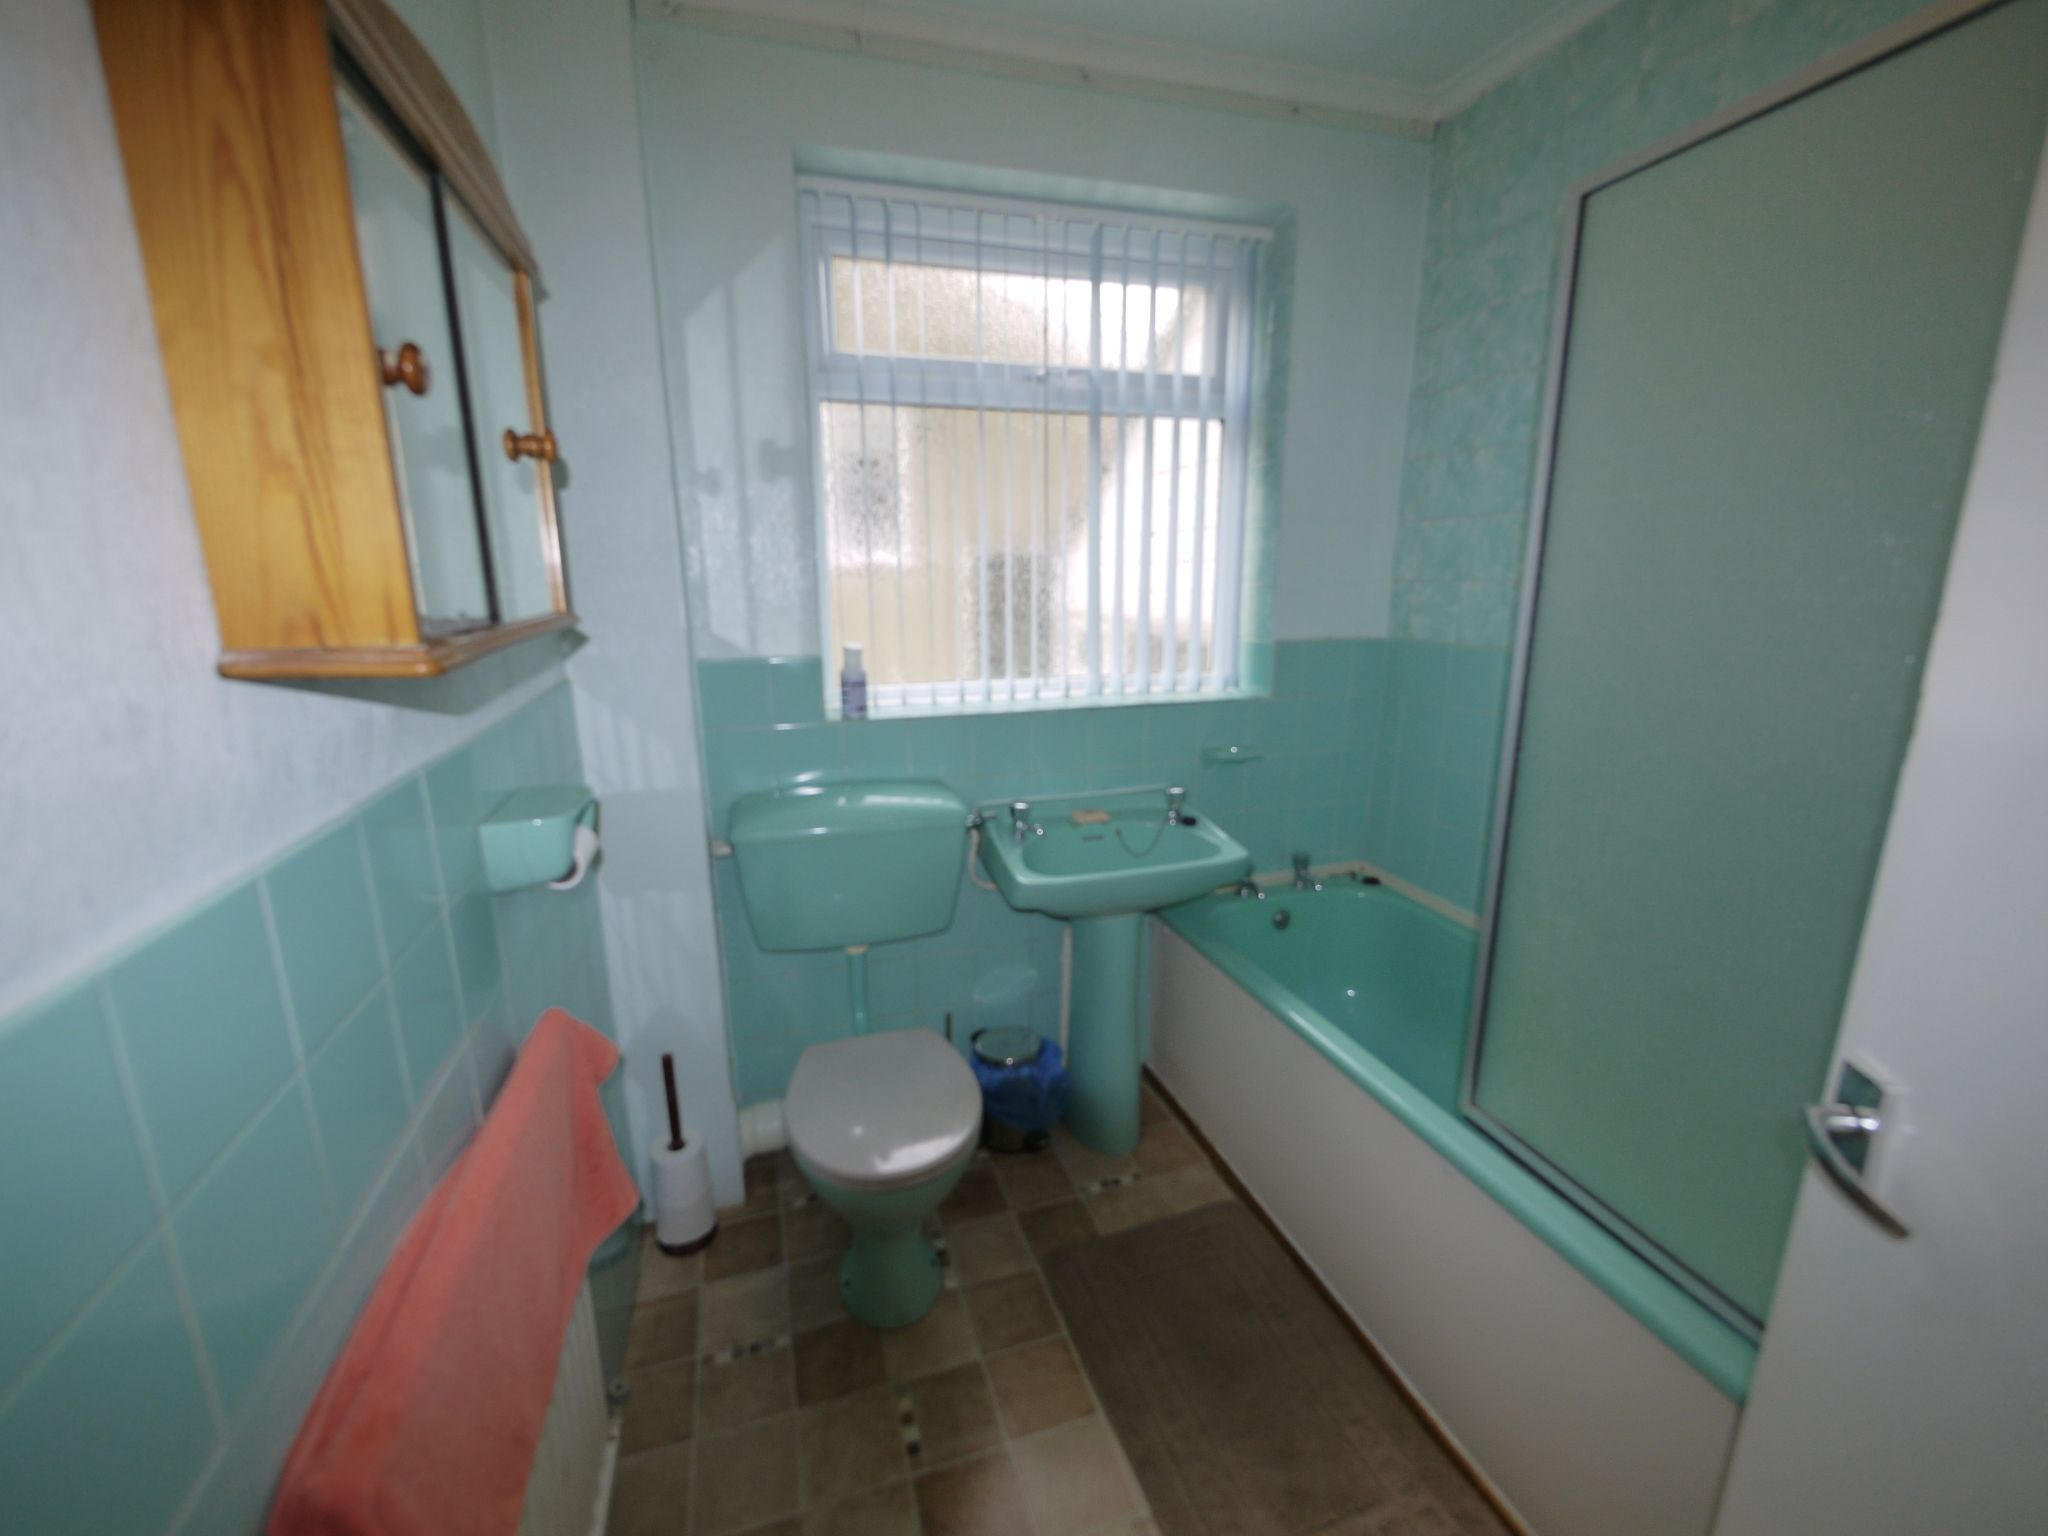 2 bedroom semi-detached bungalow SSTC in Brighouse - Bathroom.